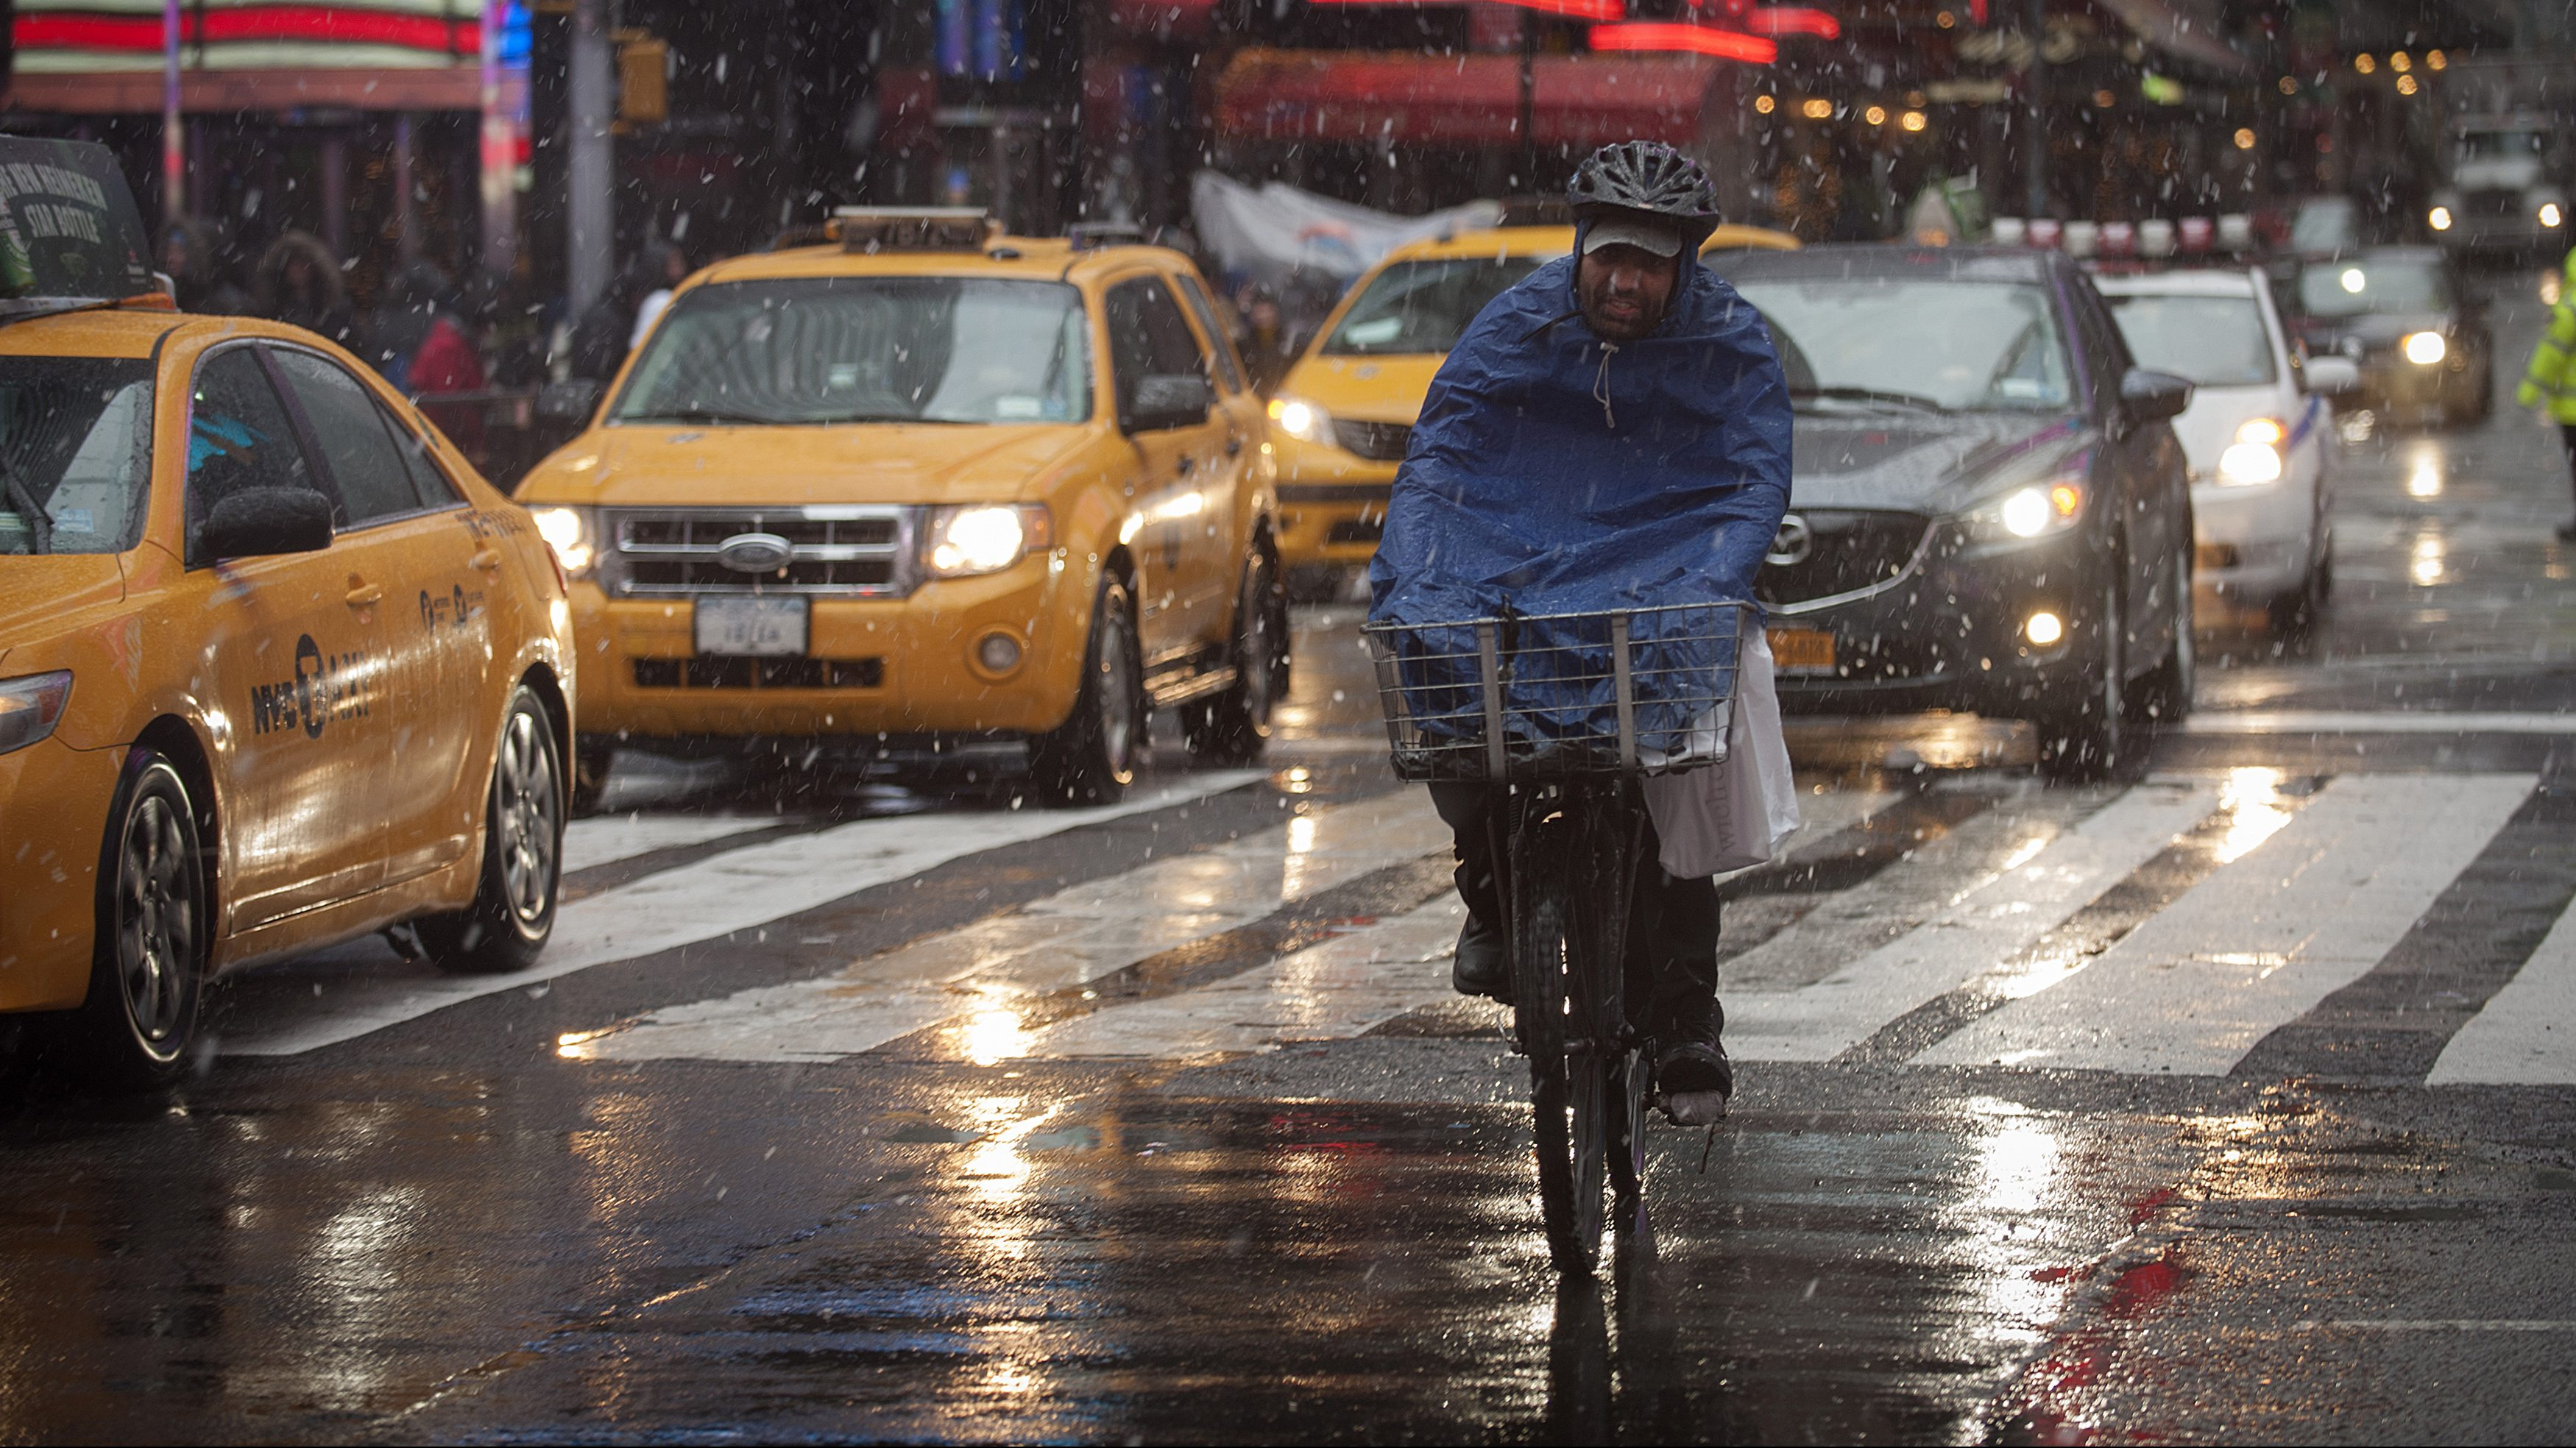 A bike delivery man makes his way through the snow in New York's Times Square December 29, 2012. REUTERS/Keith Bedford (UNITED STATES - Tags: ENVIRONMENT SOCIETY) - RTR3BYYH